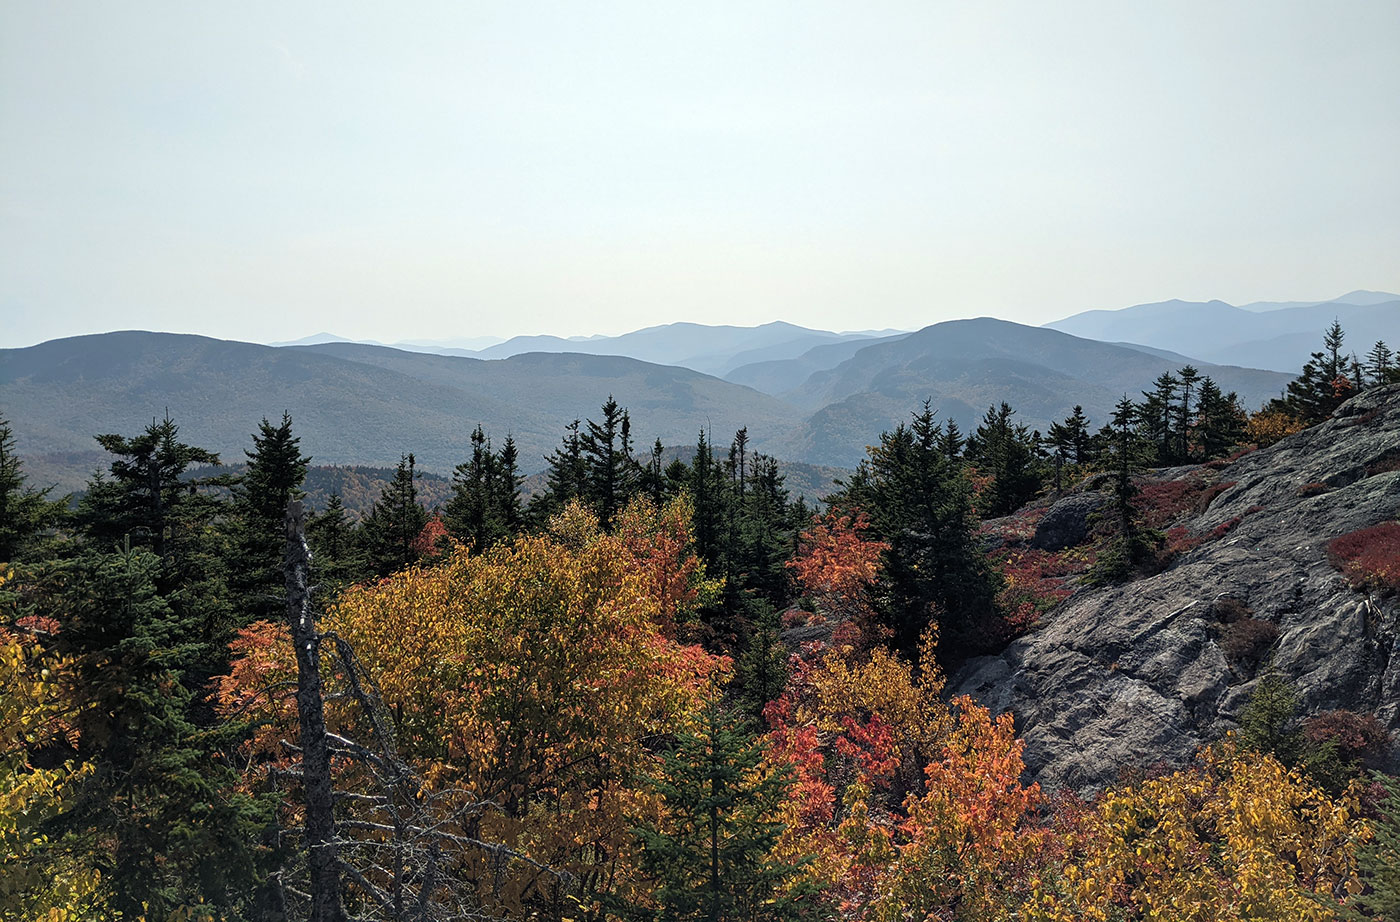 View from top of Caribou Mountain